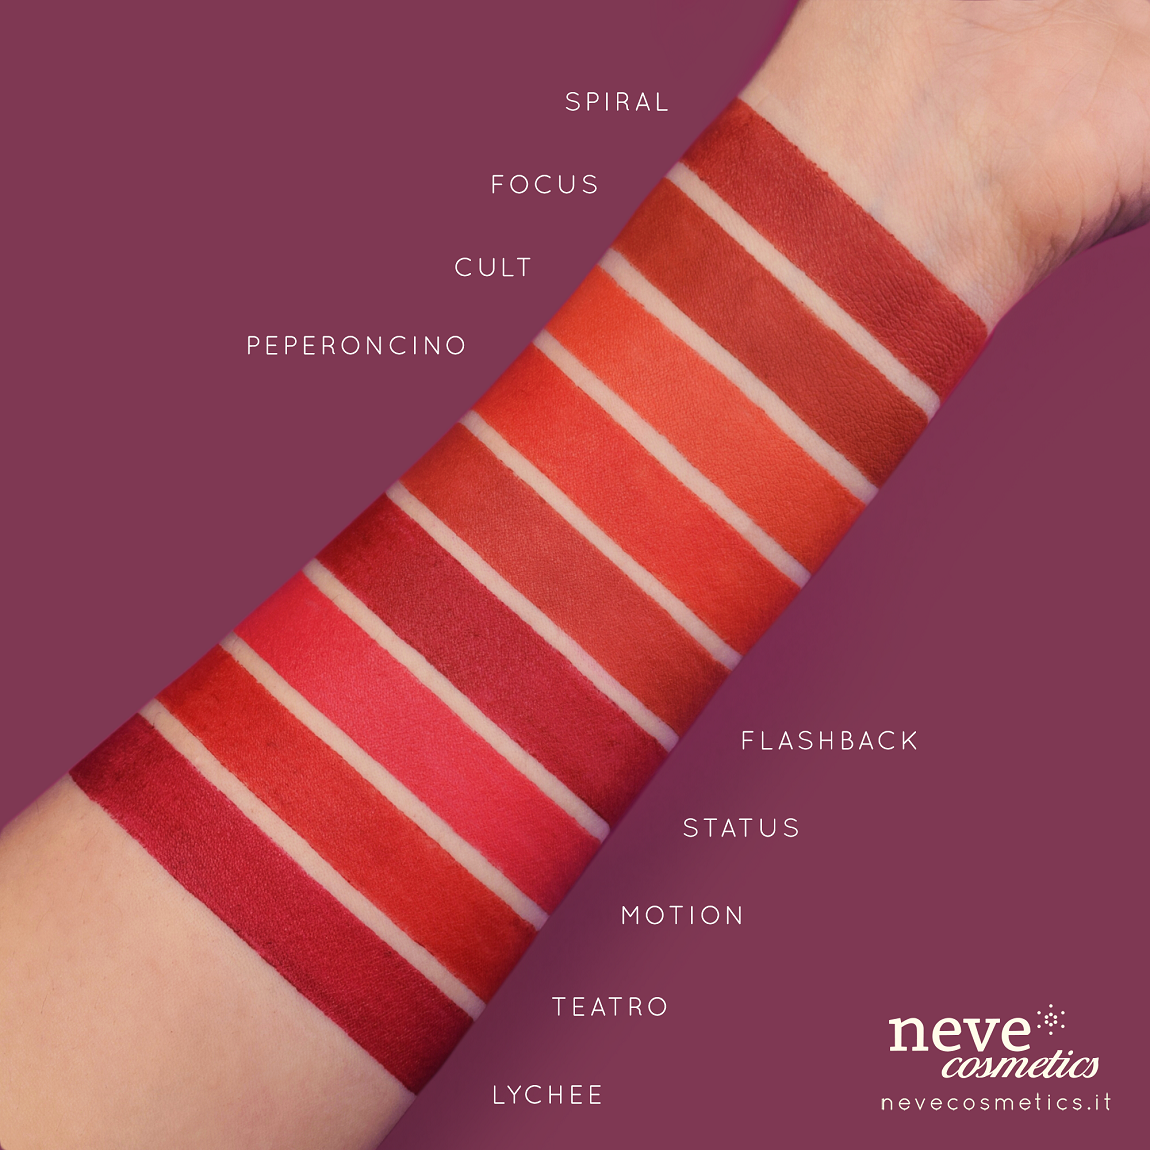 Swatch of the pencils red lips of Neve Cosmetics.